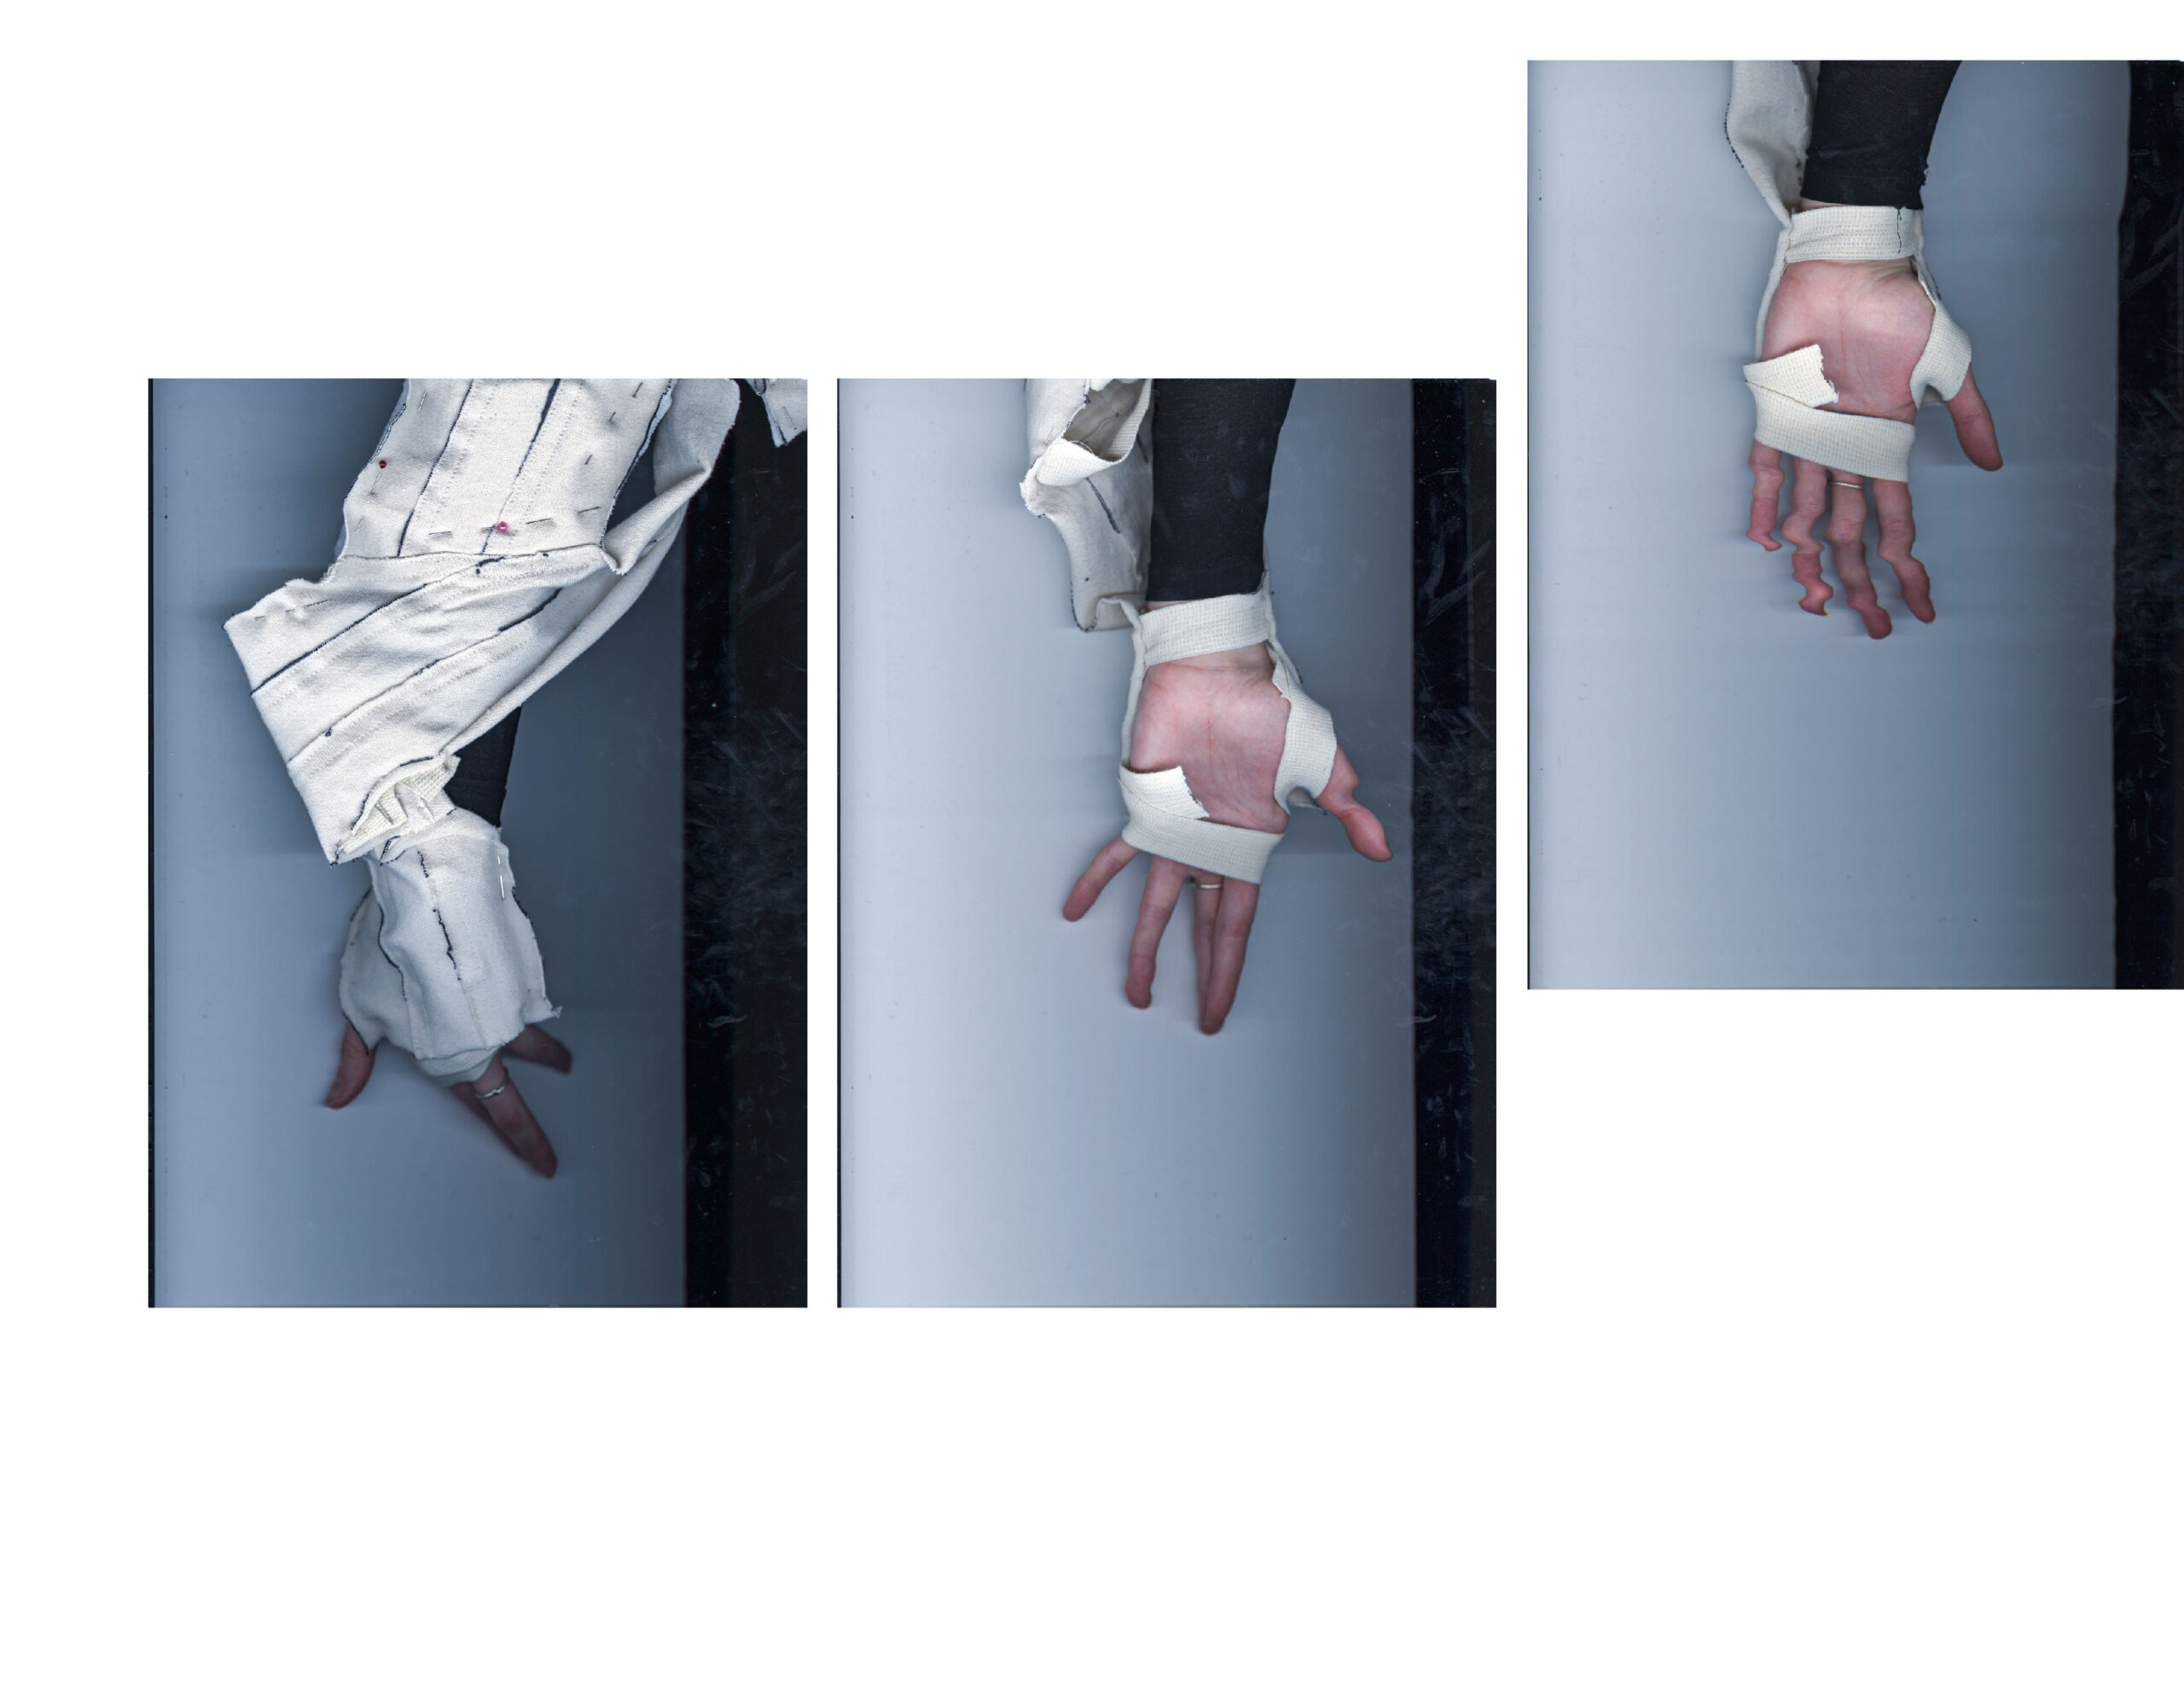 Reconstruction - Fittings - by Tricia Crivellaro